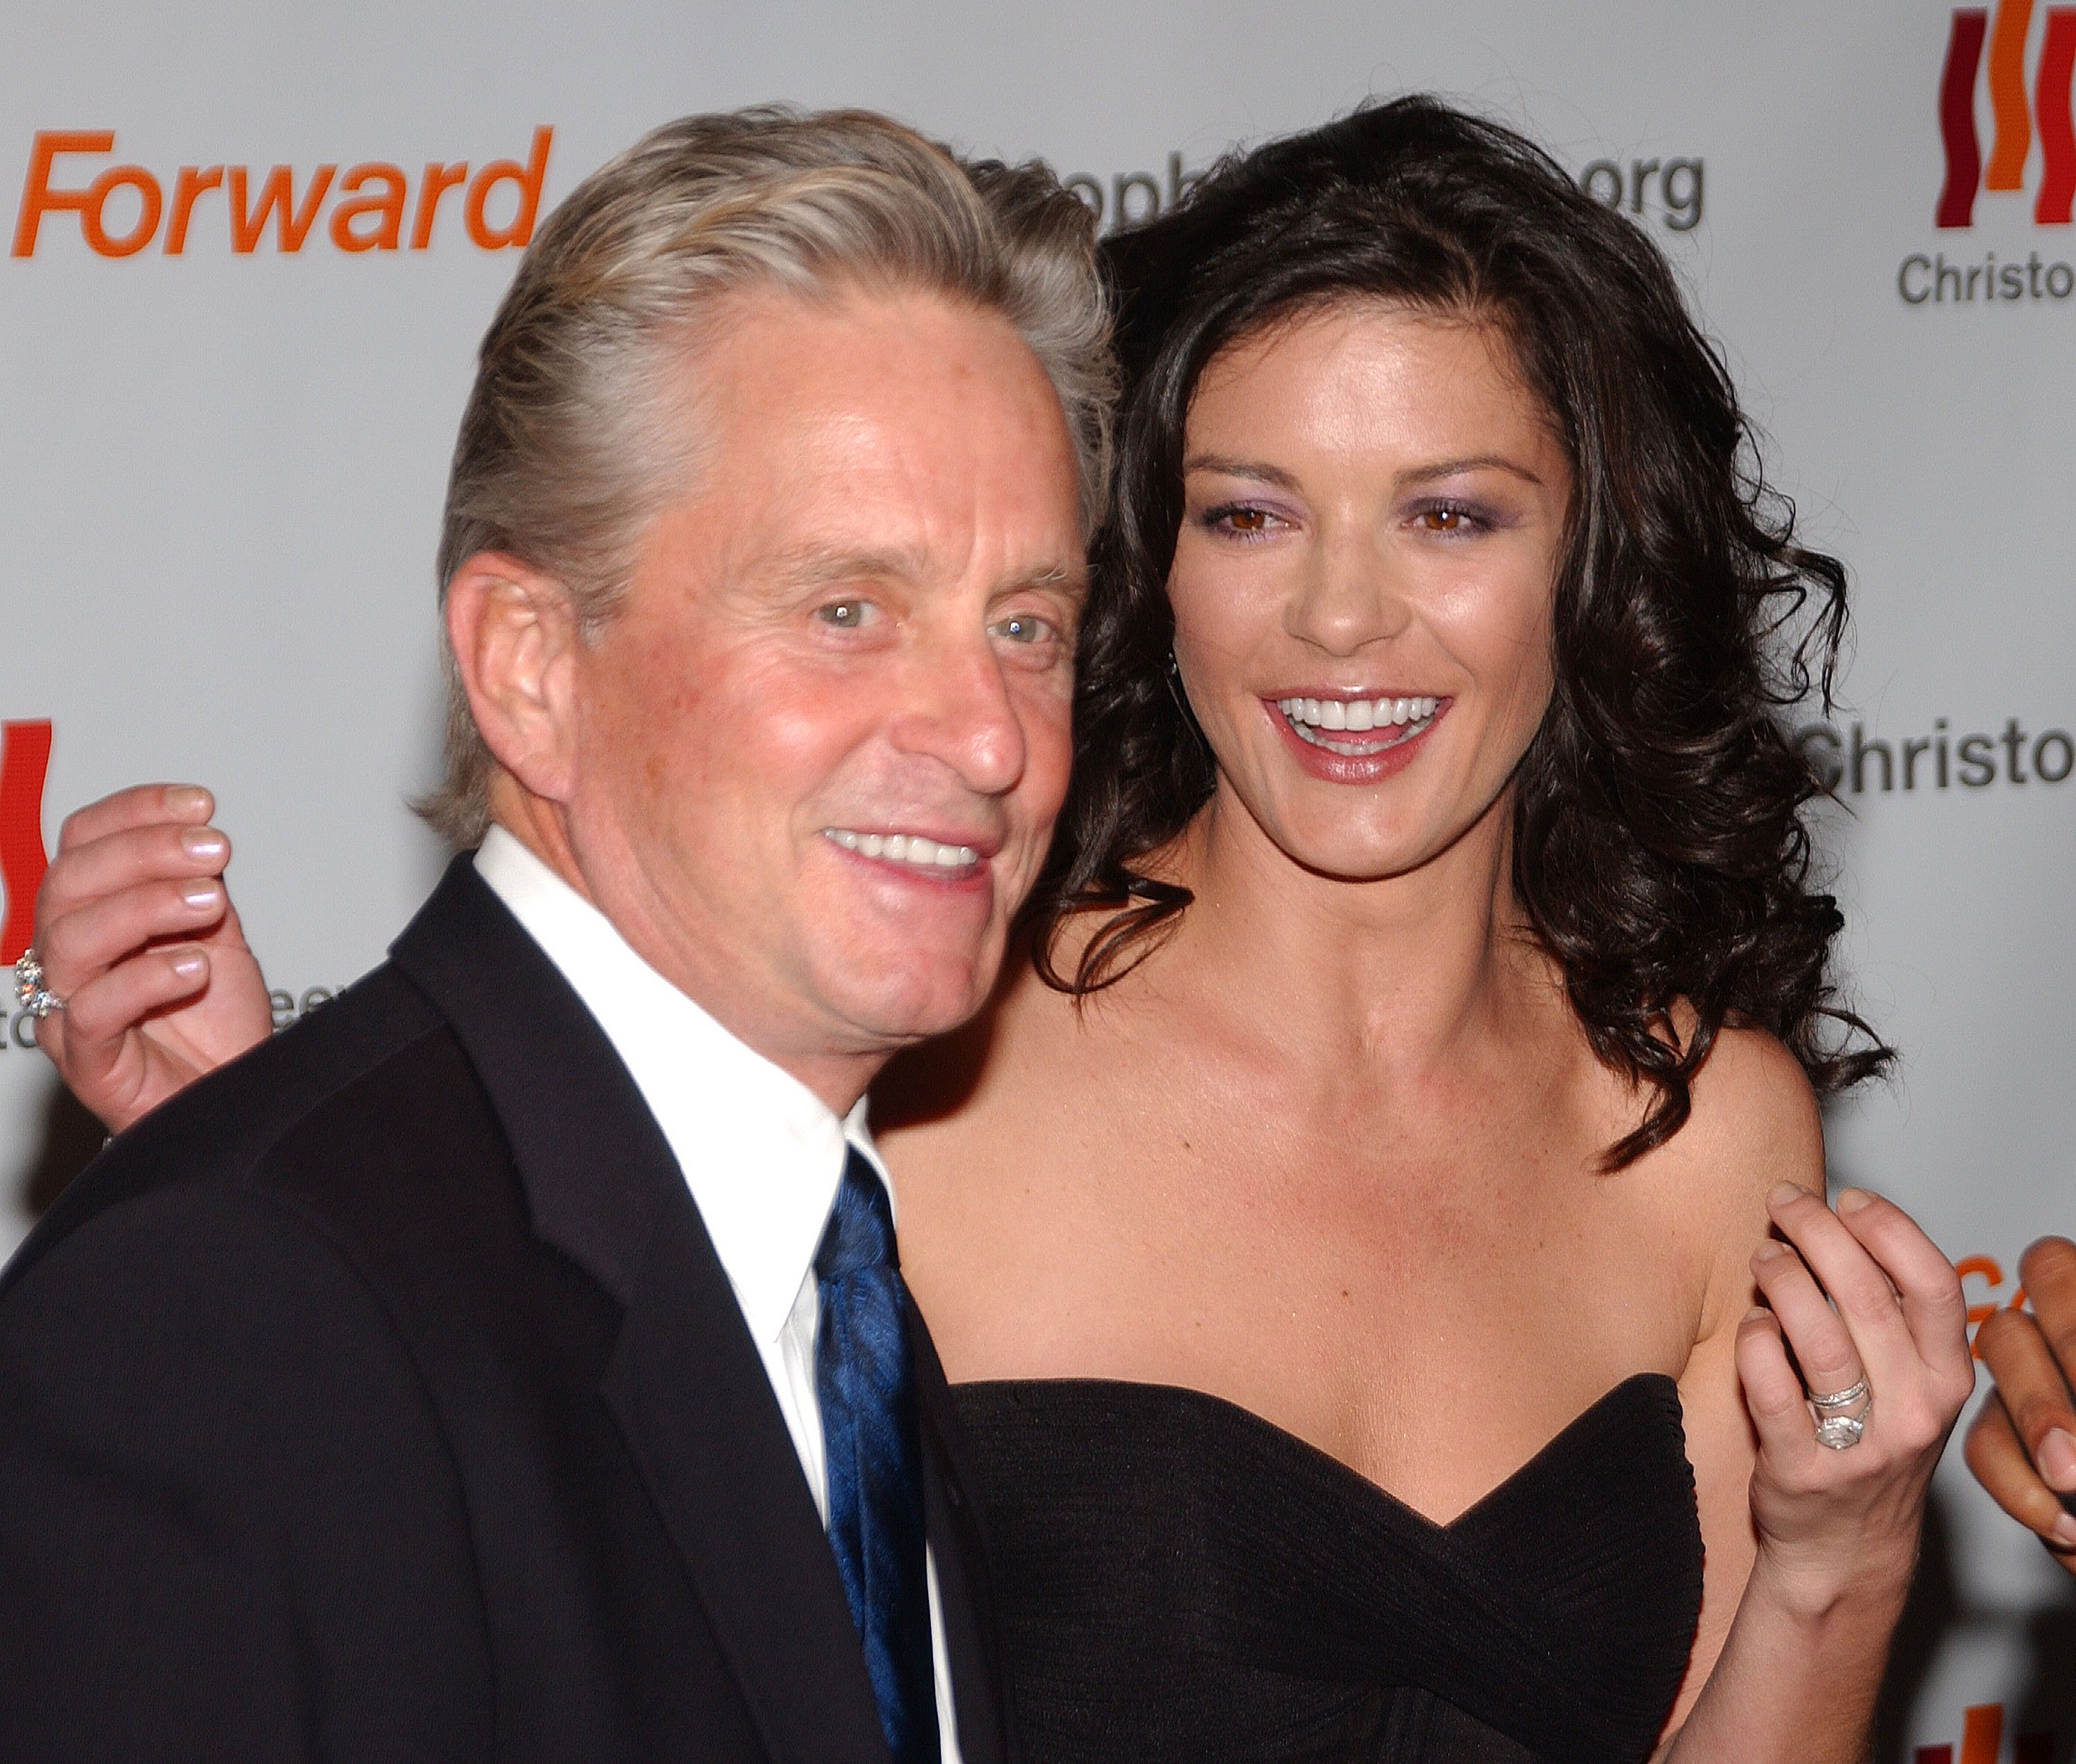 Catherine Zeta-Jones and husband Michael Douglas during a 2005 event in New York City  | Photo: Getty Images